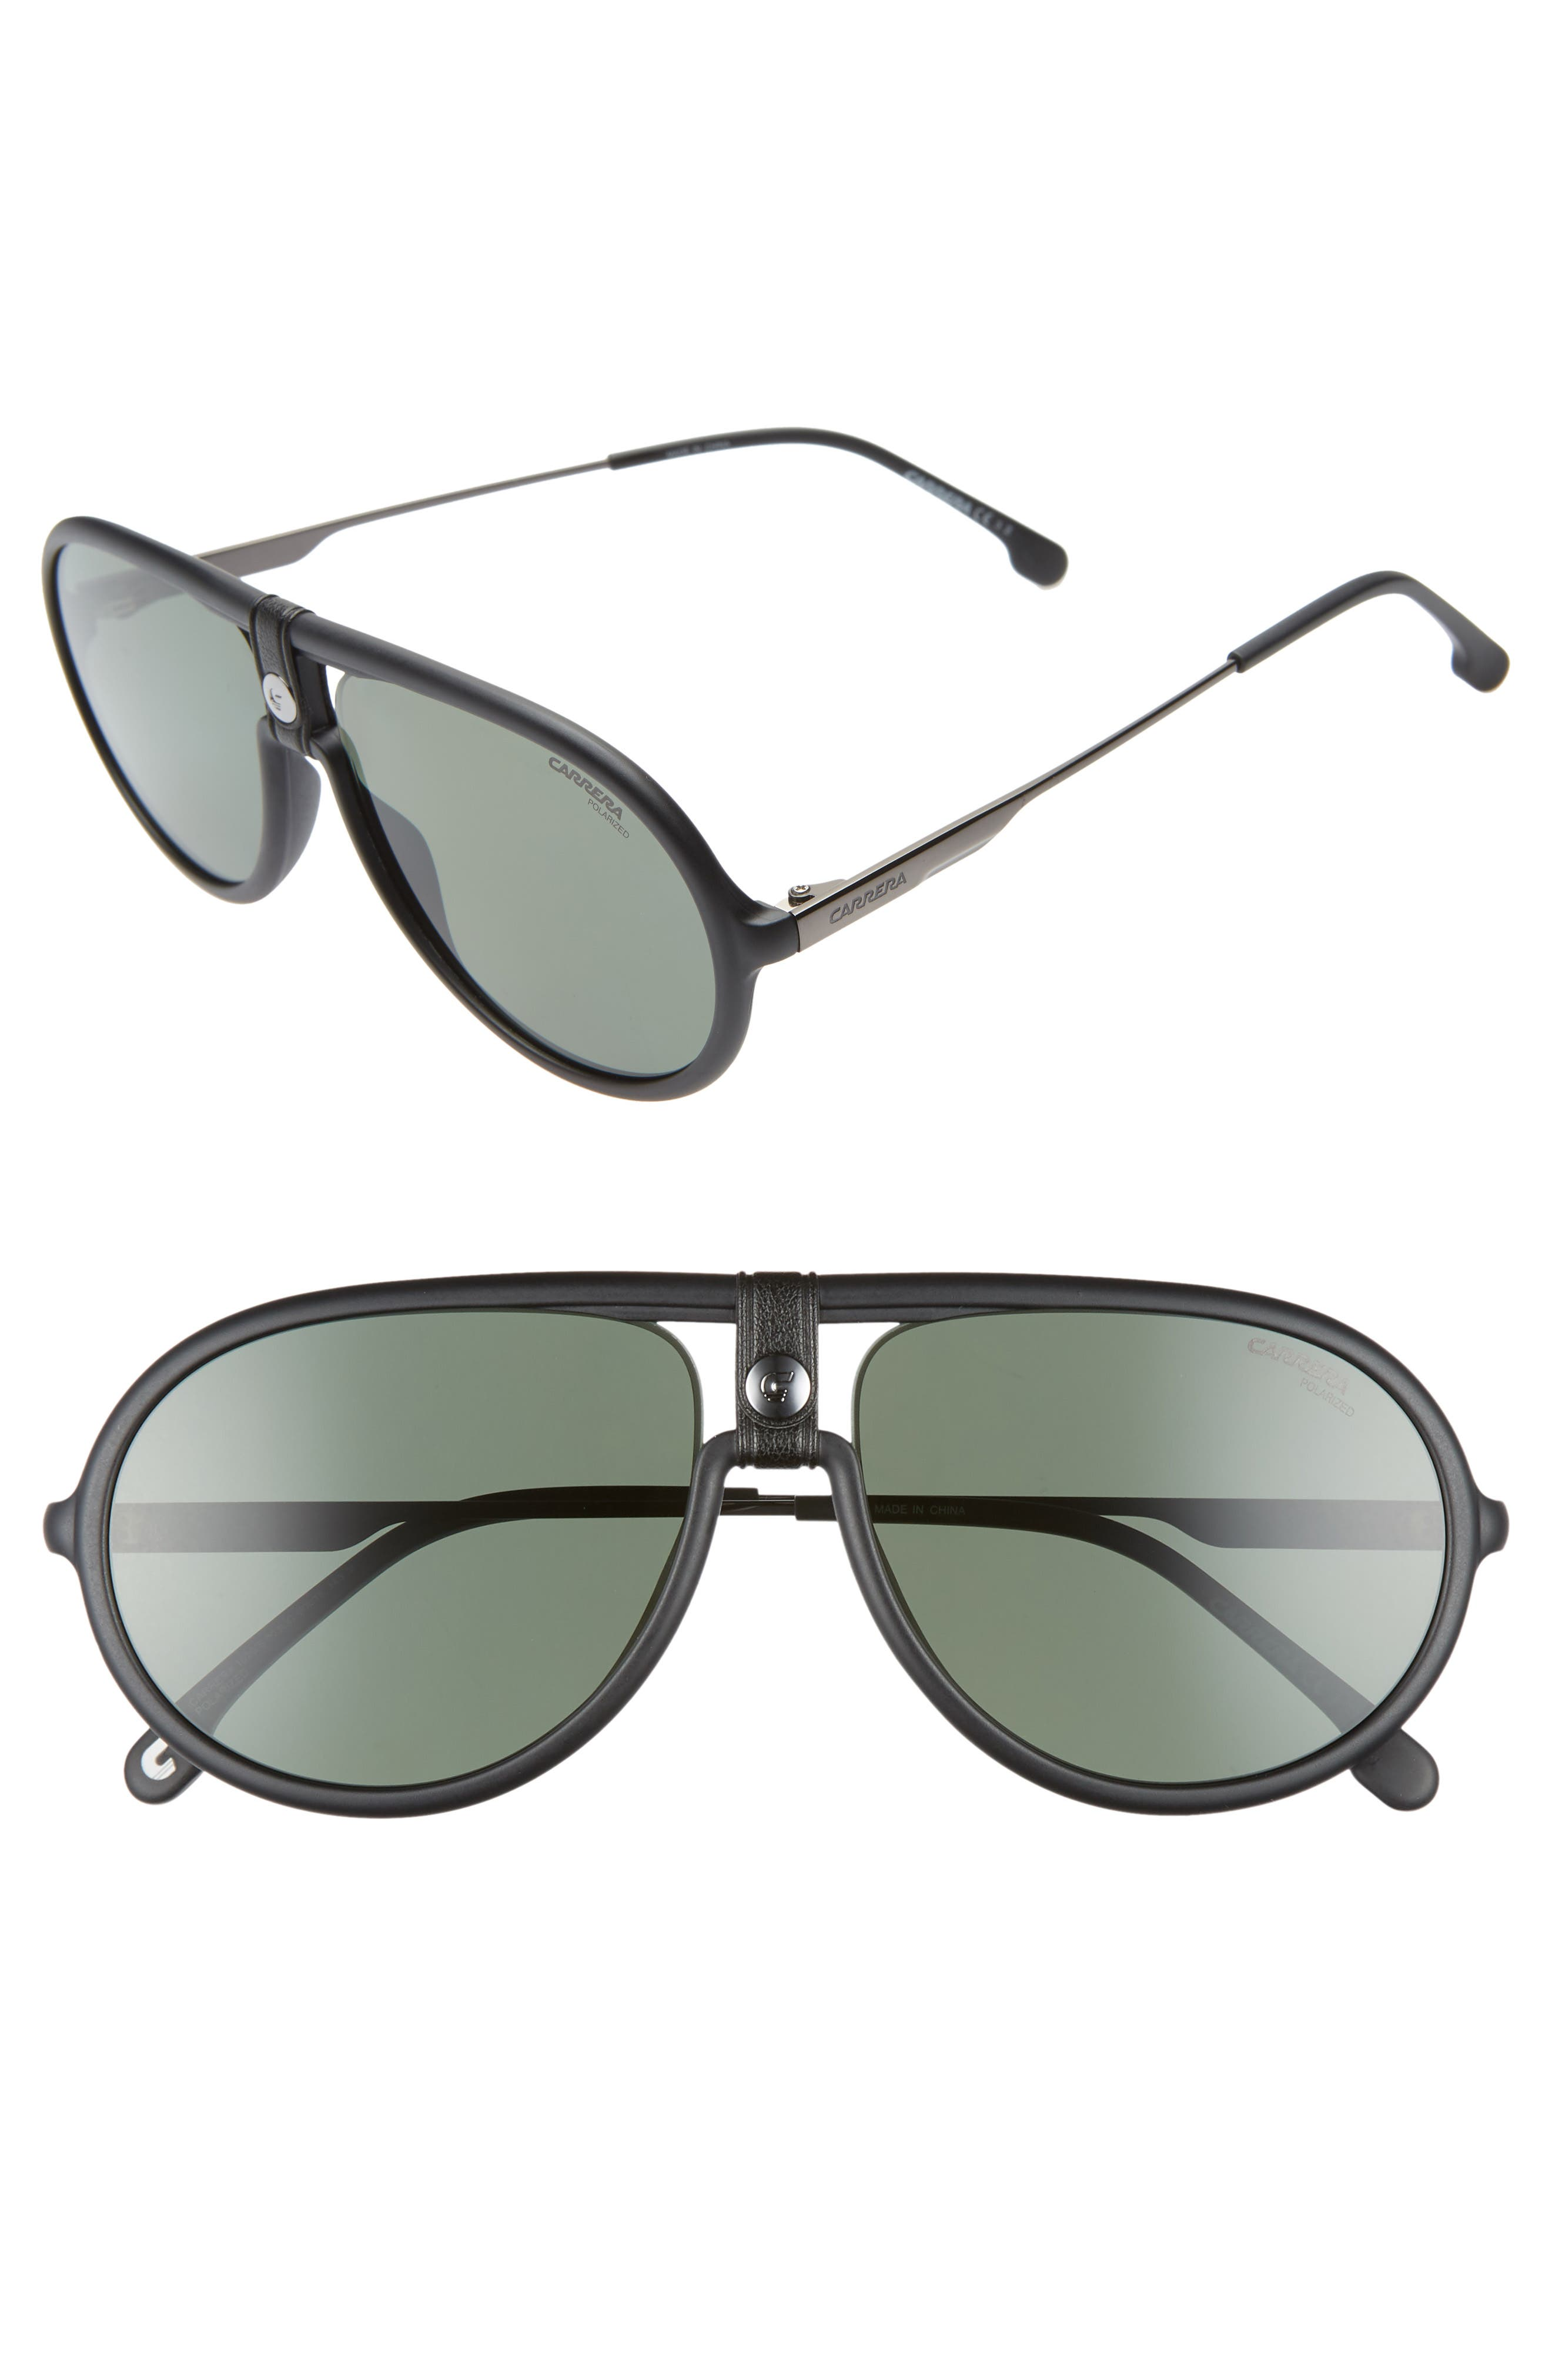 Carrera Eyewear 60Mm Polarized Aviator Sunglasses - Matte Black